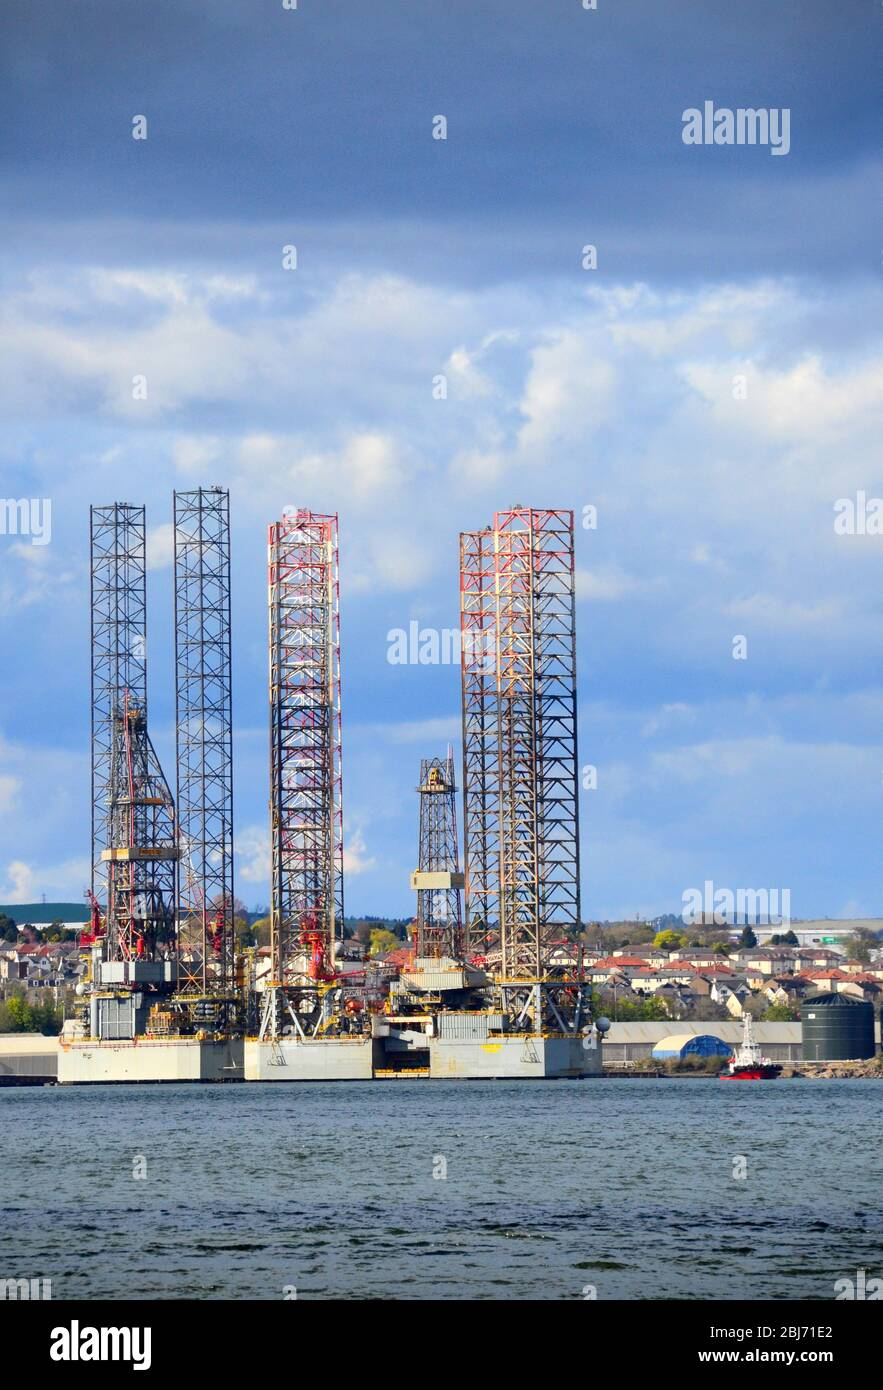 Oil rig drilling platforms stationed at Dundee Dockside Stock Photo